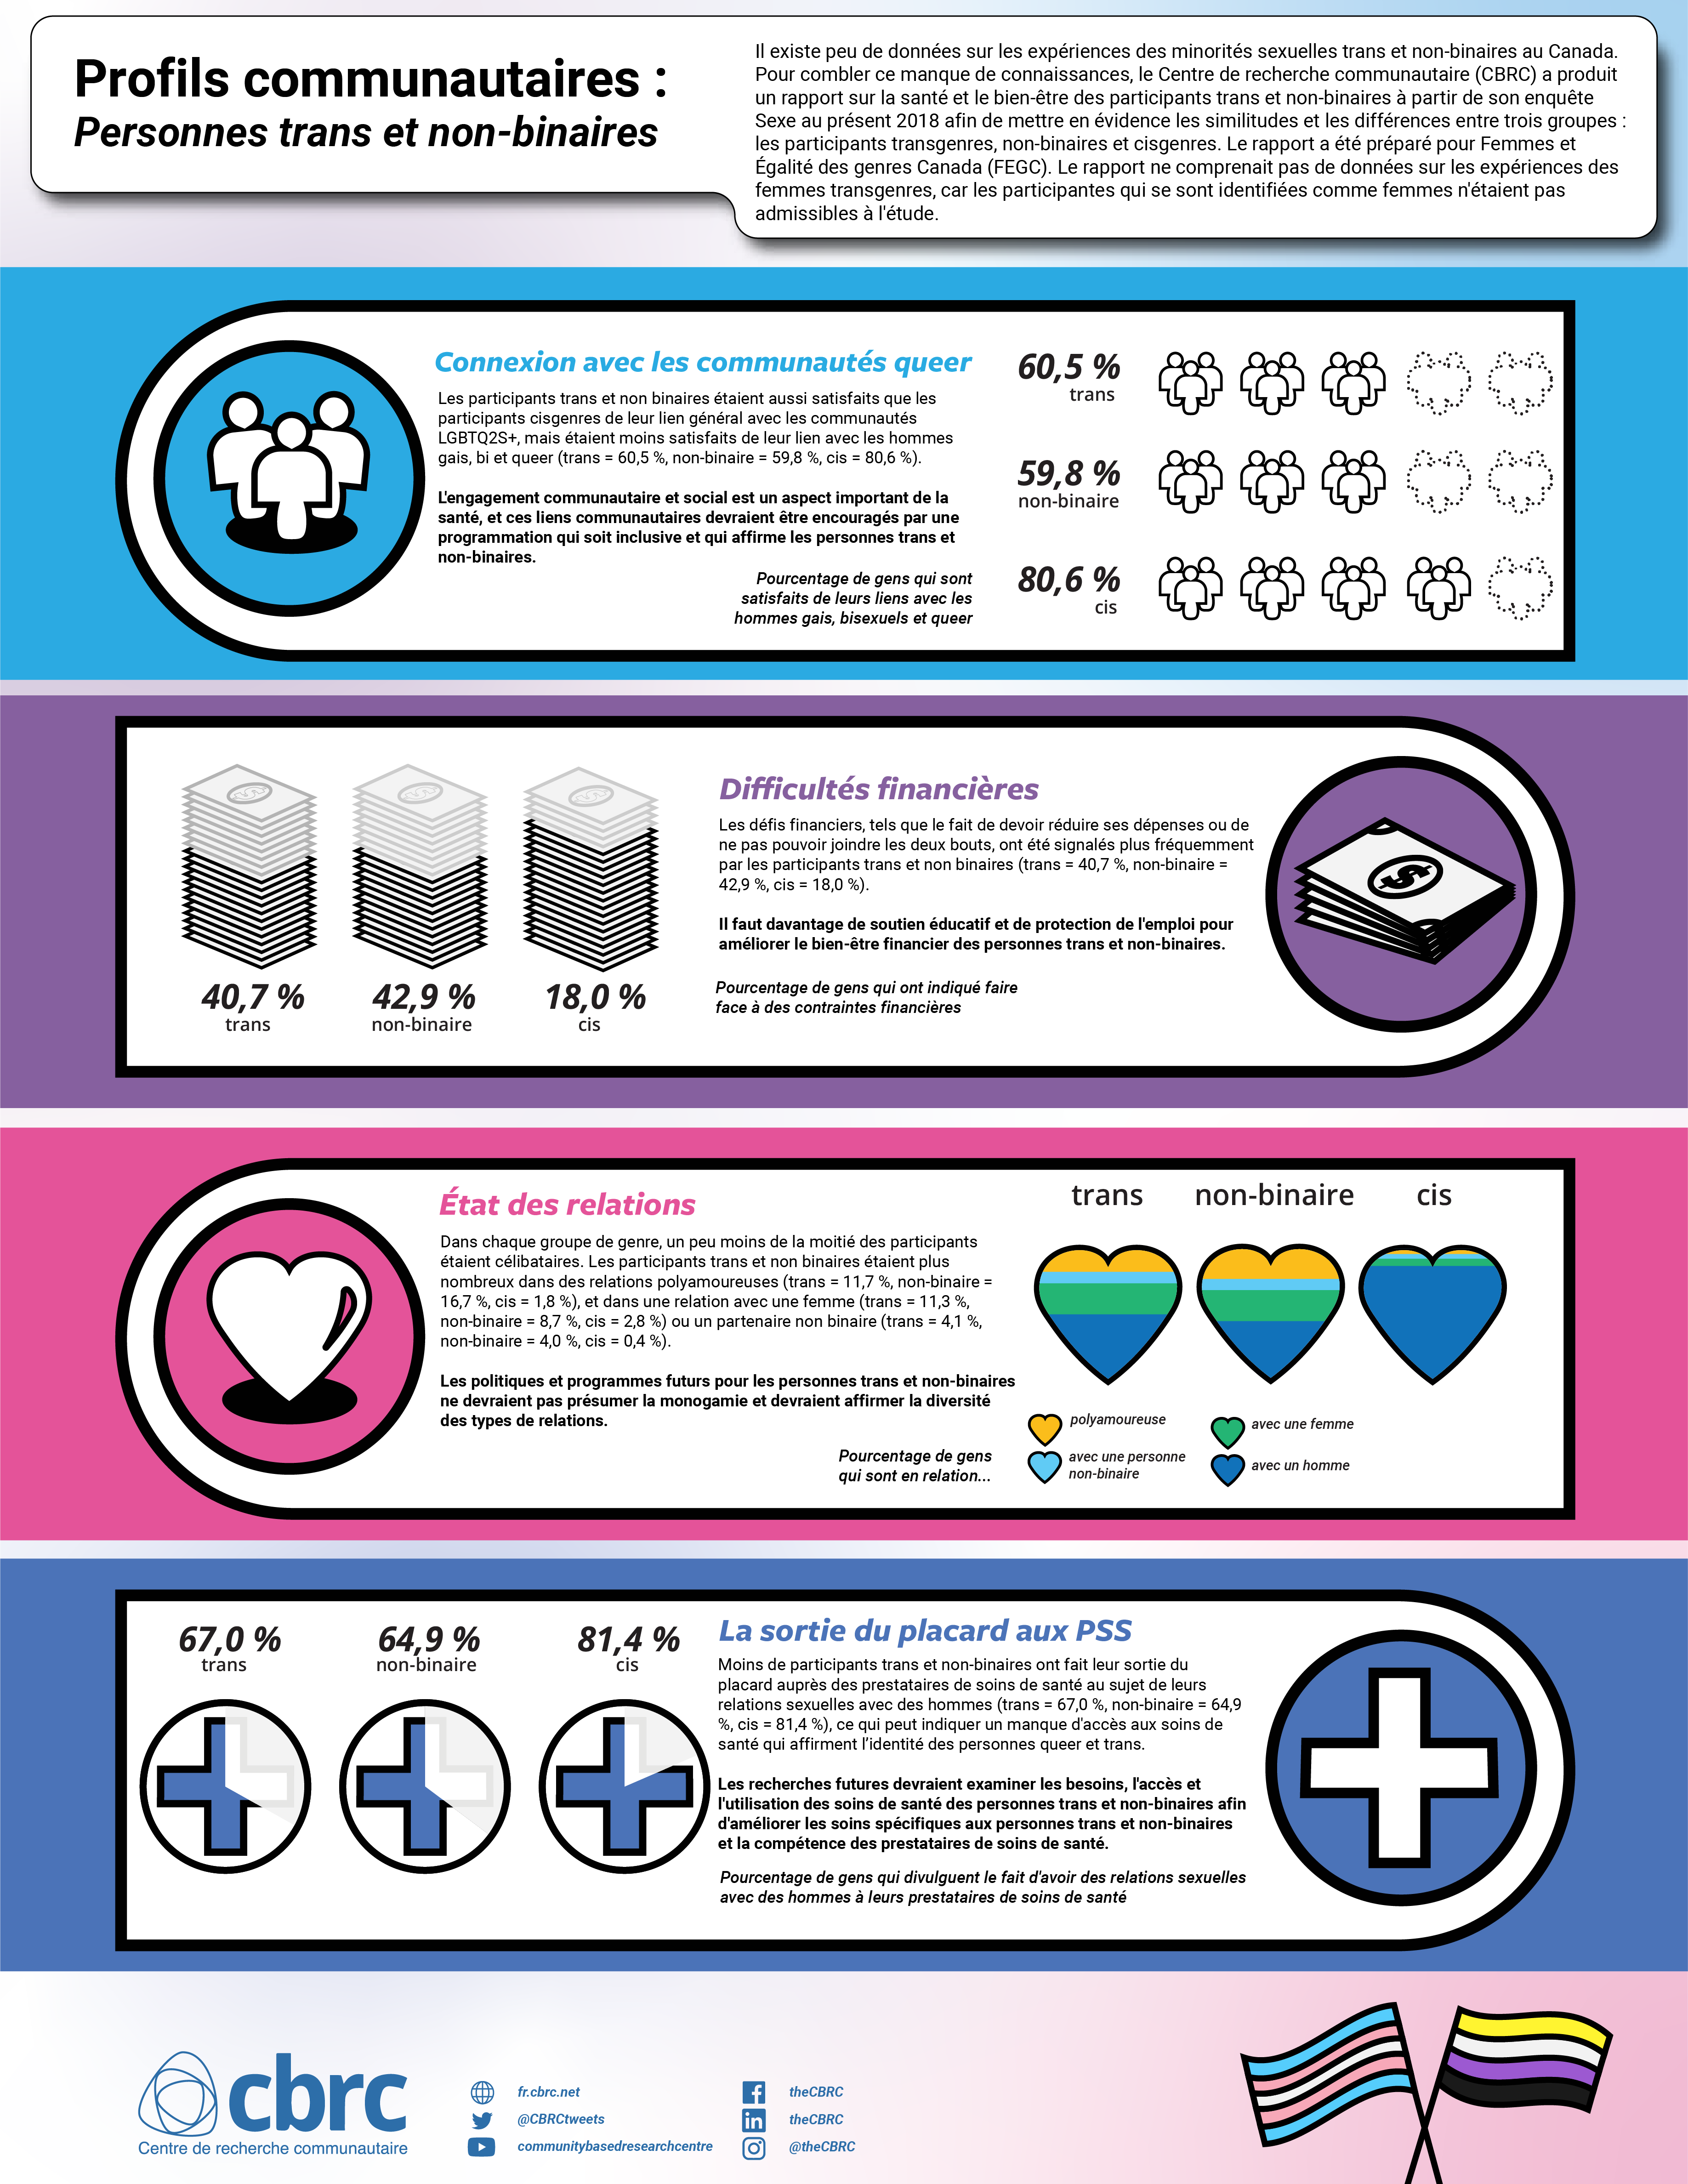 WageInfographic_FR.png